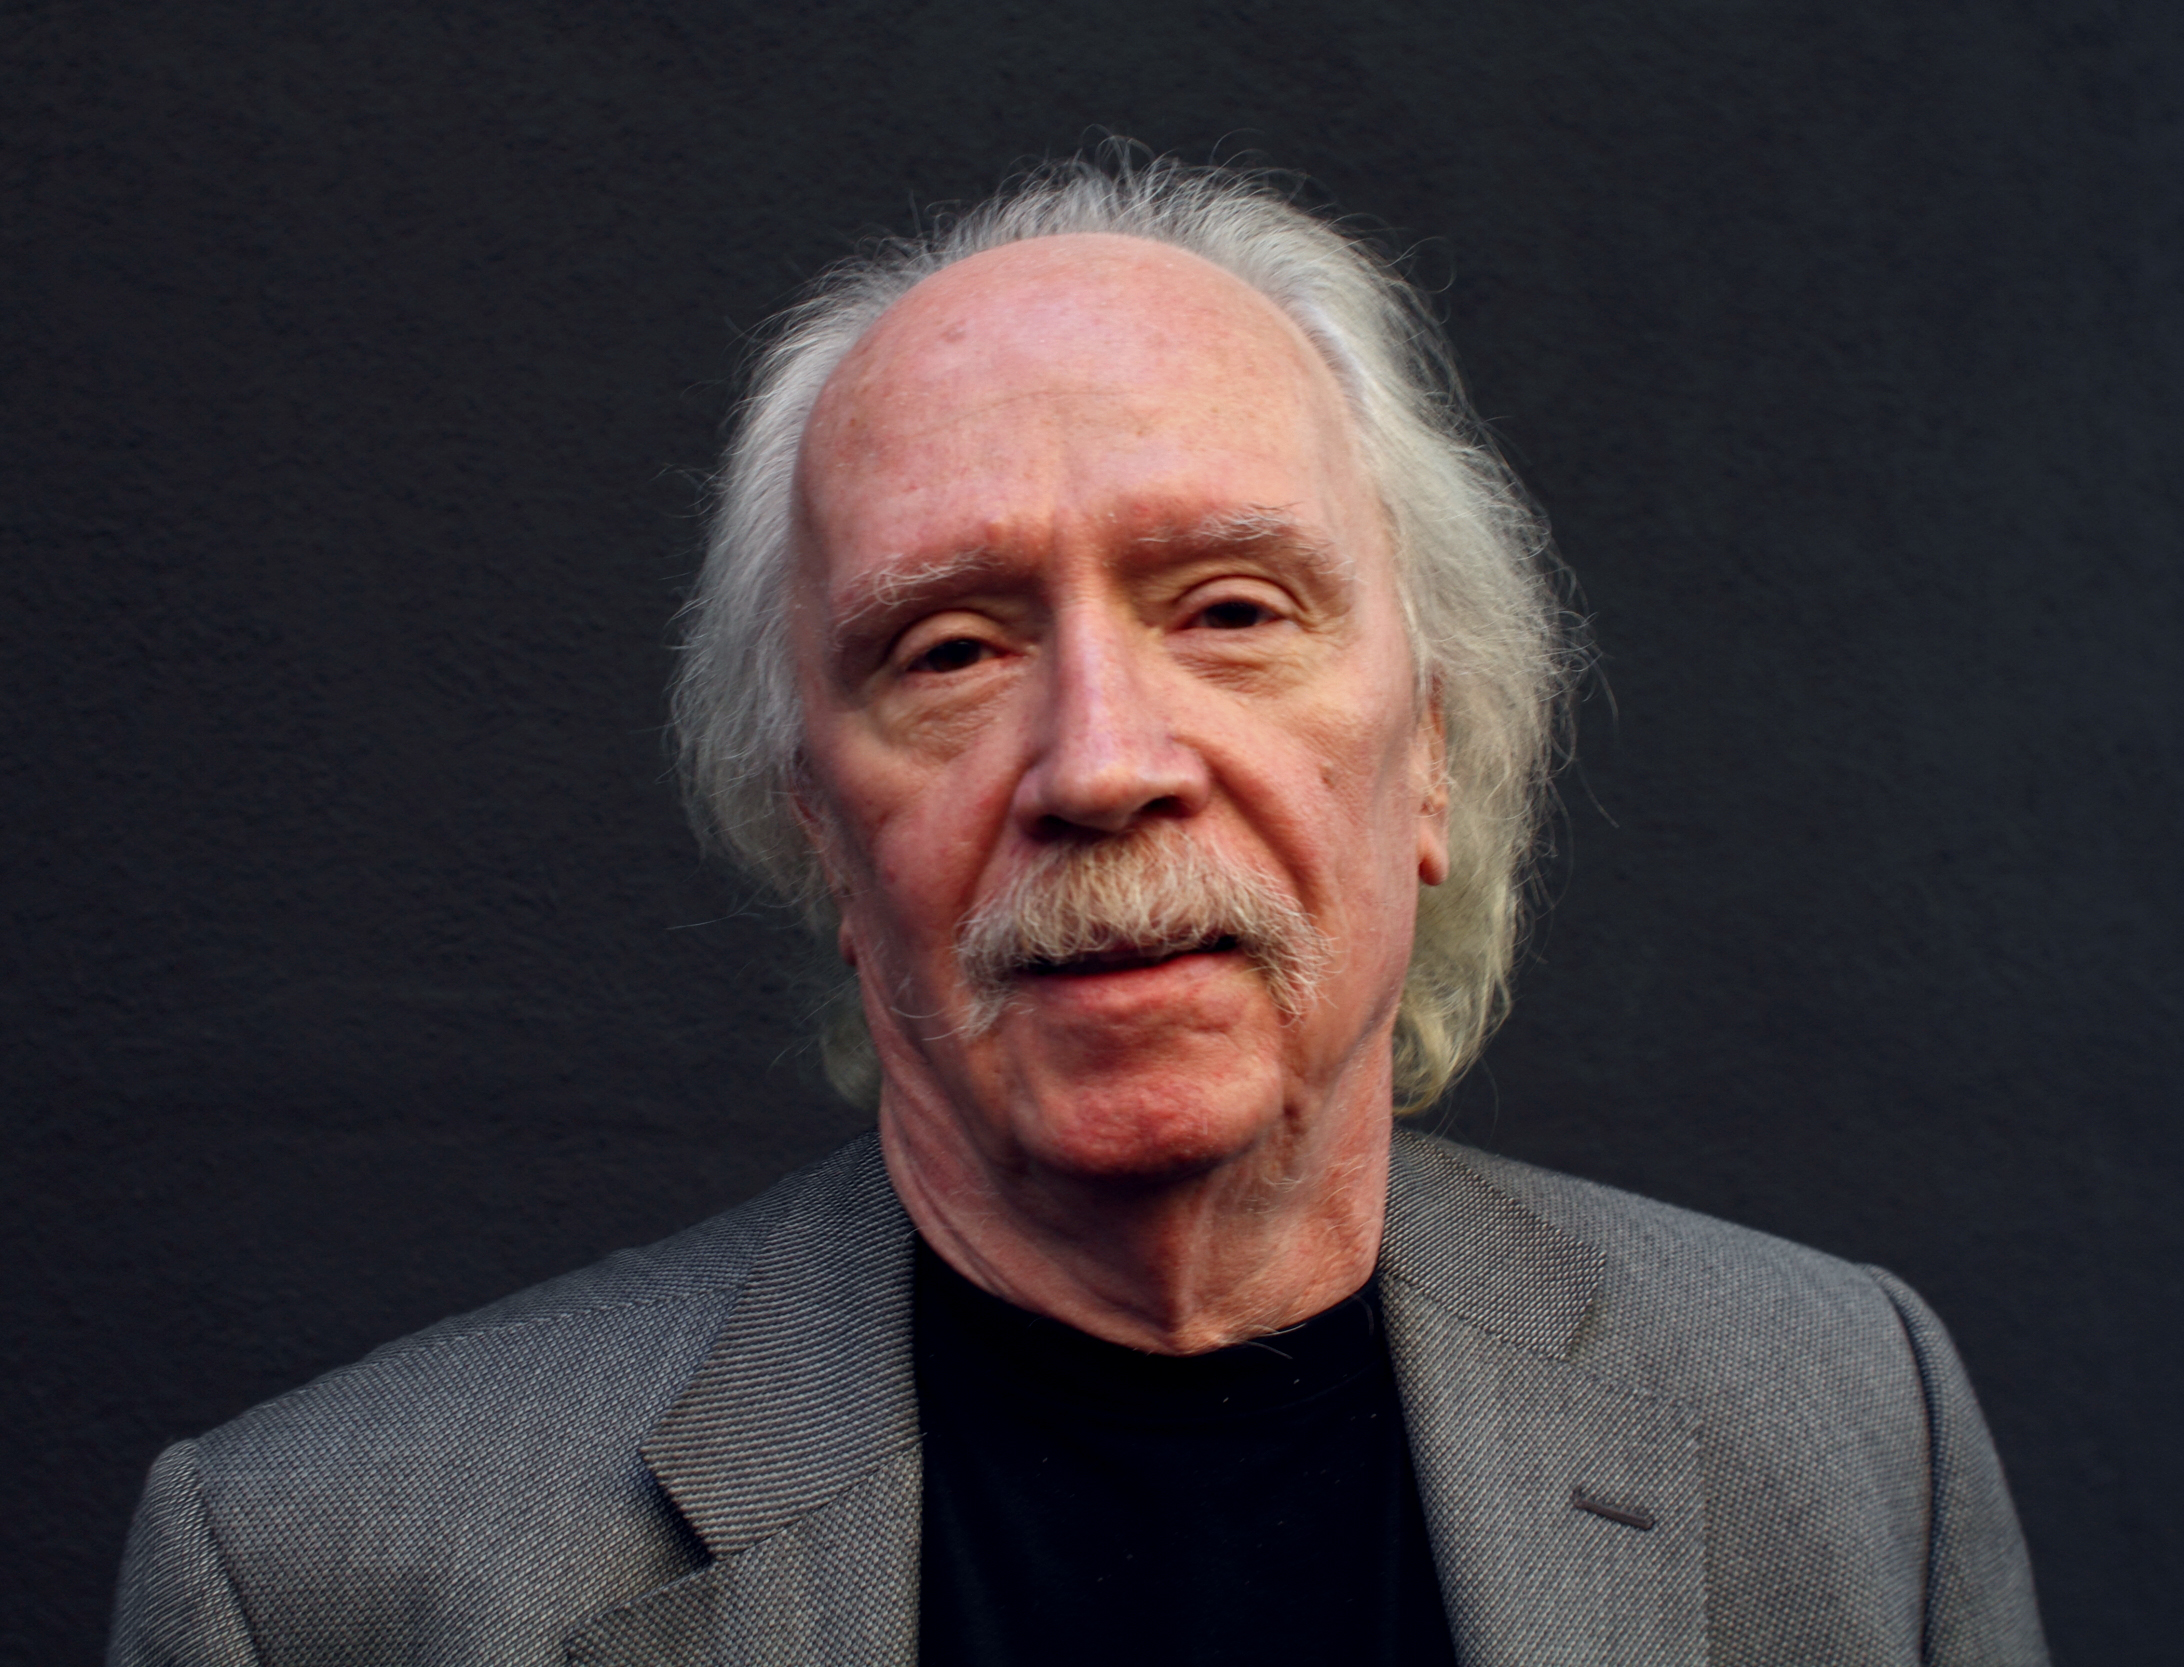 JohnCarpenter2010